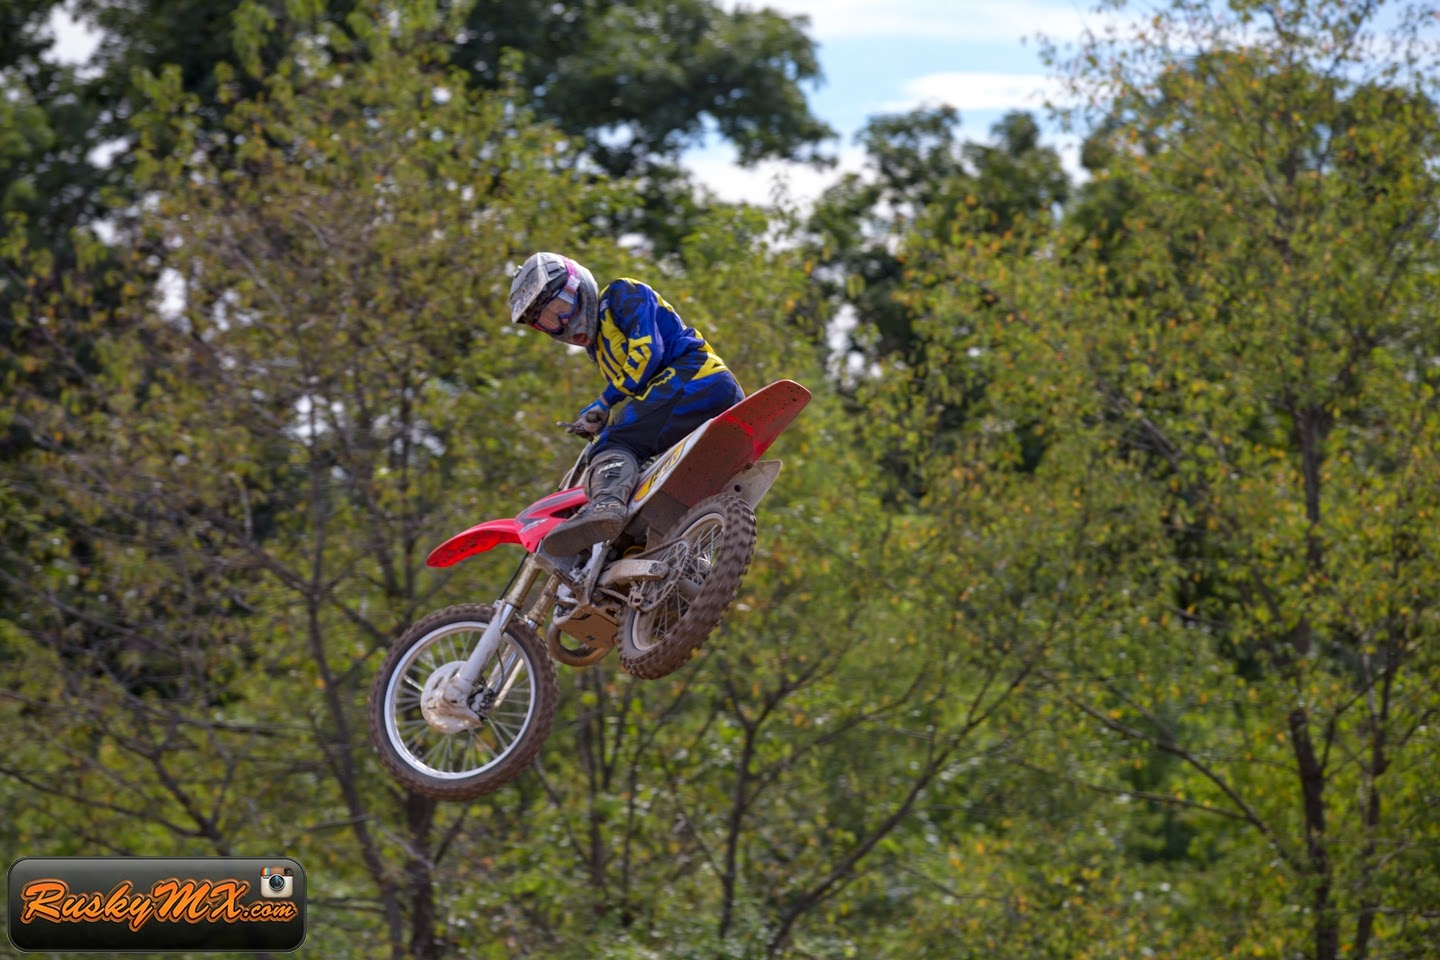 Jimmy Decotis 2 Stroke Shootout Sleepy Hollow